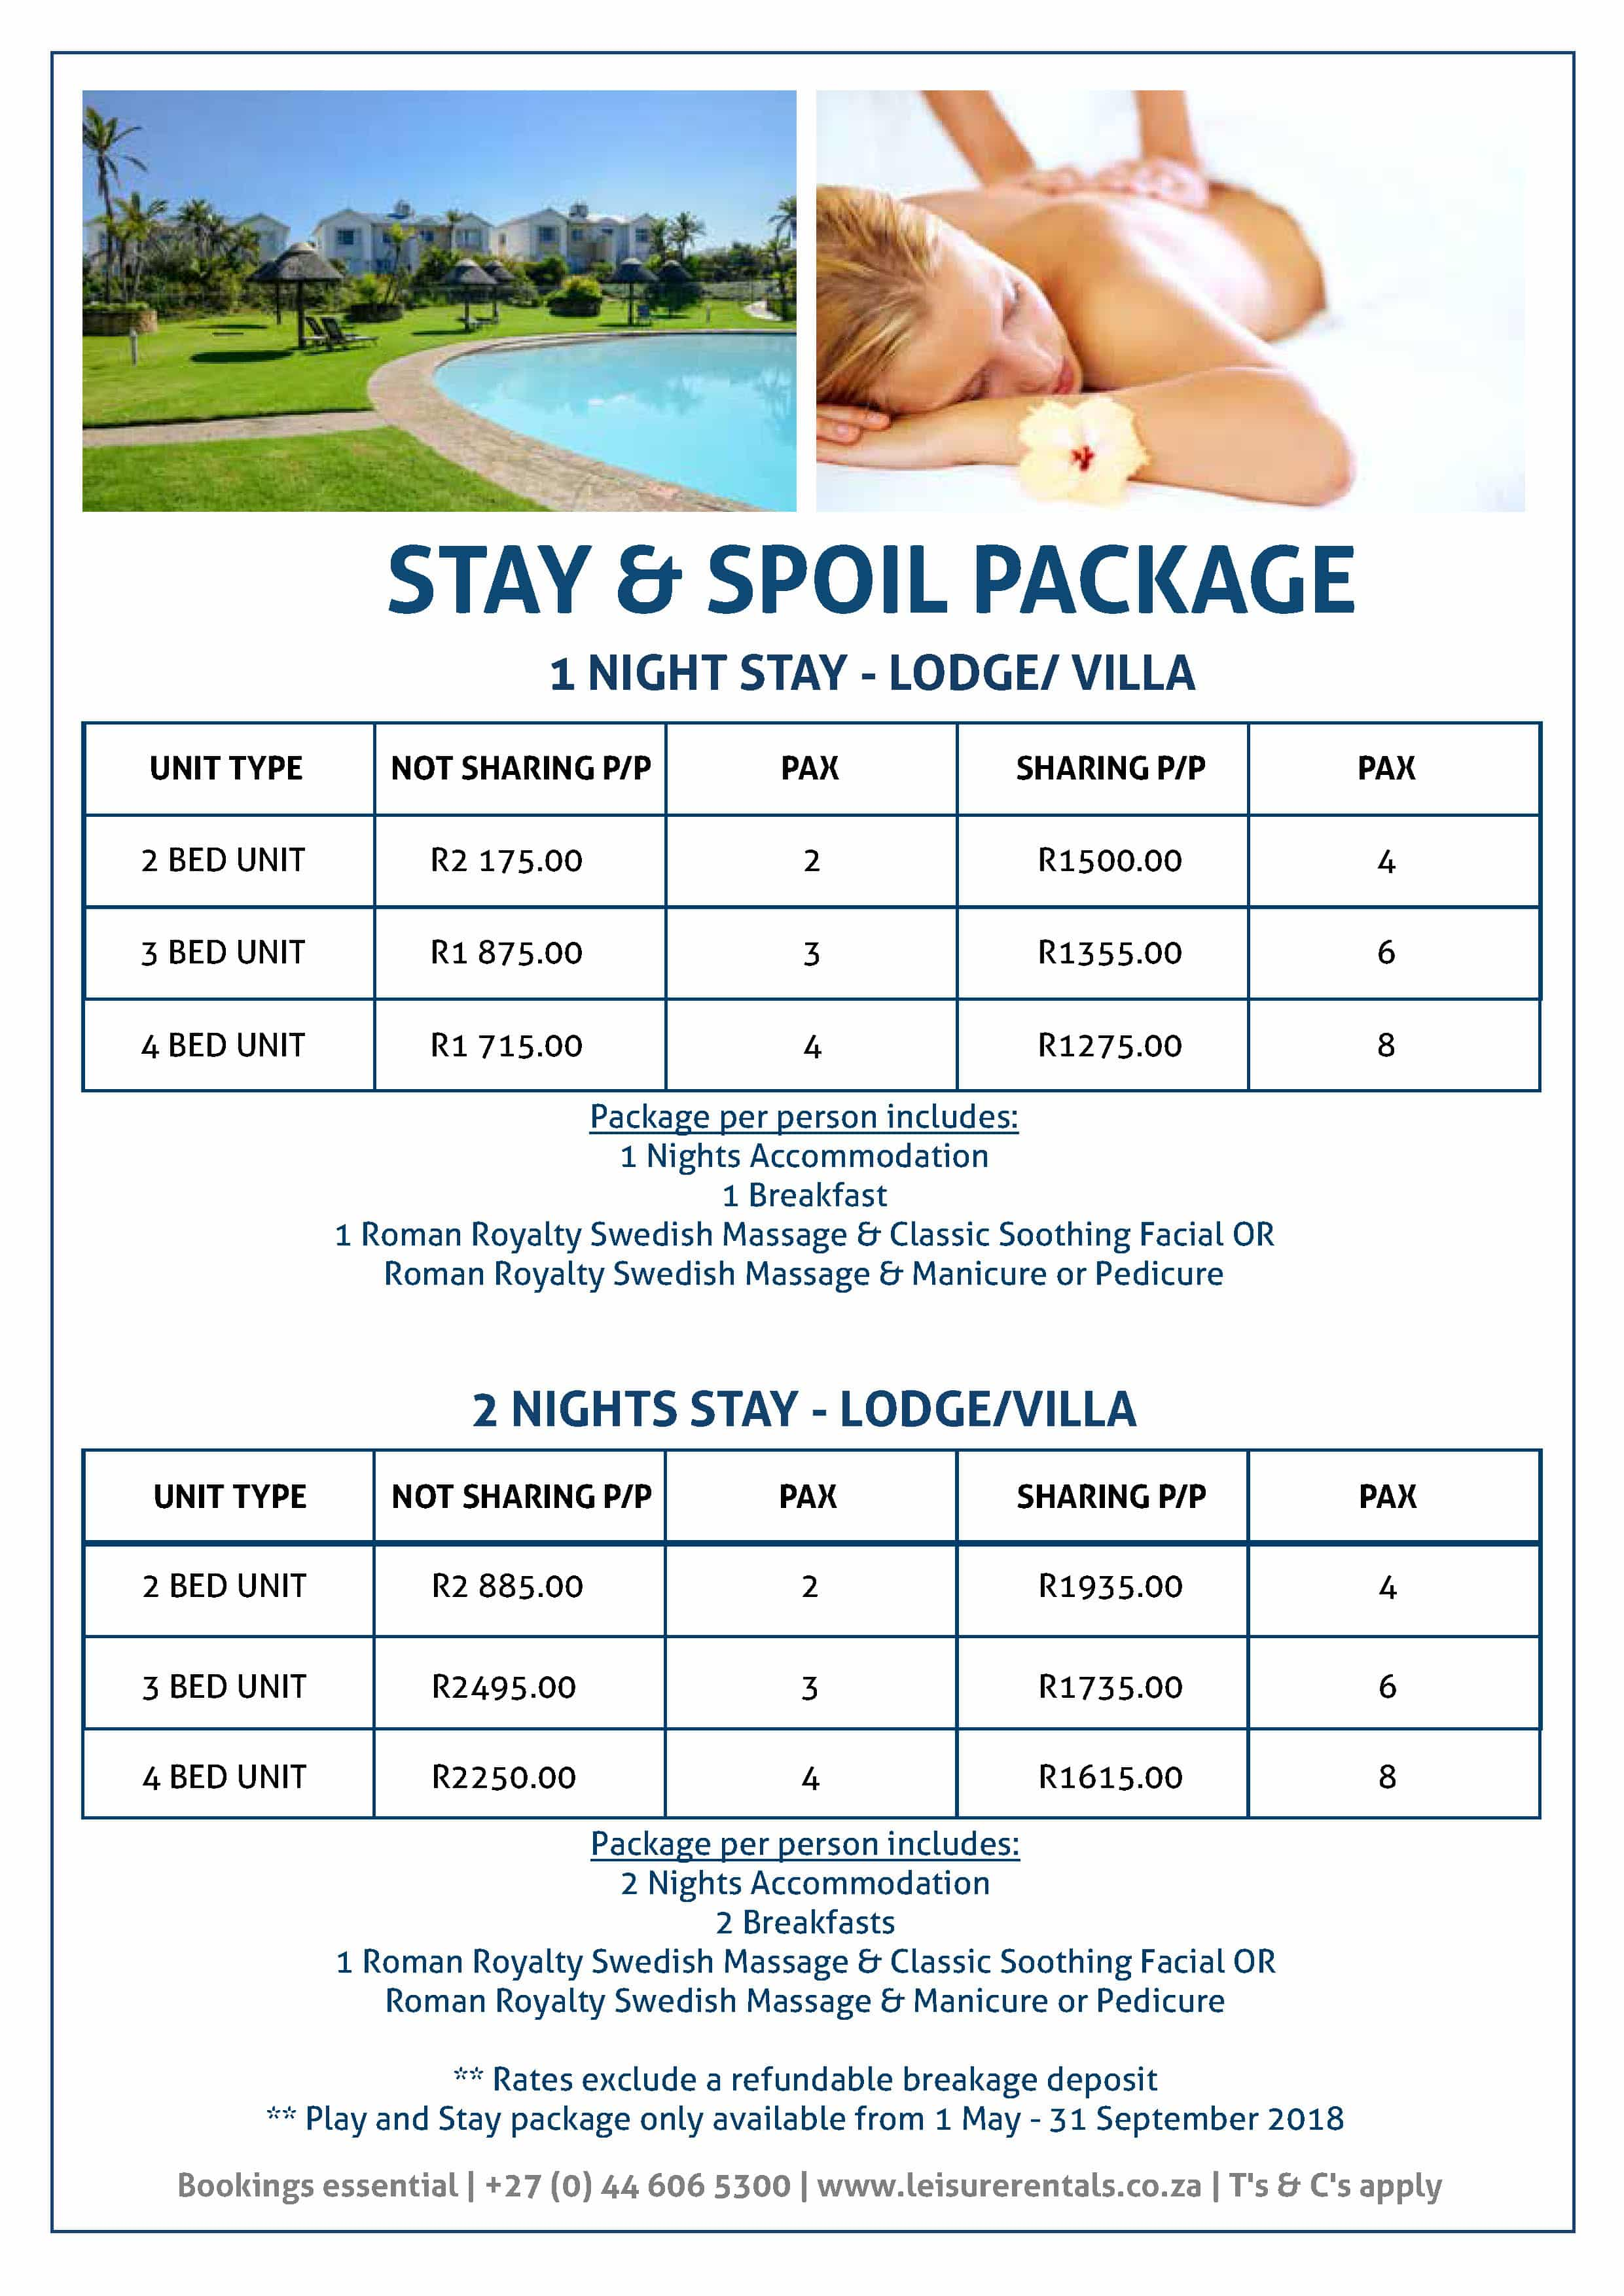 2018 Leisure Rentals Packages - Page 2